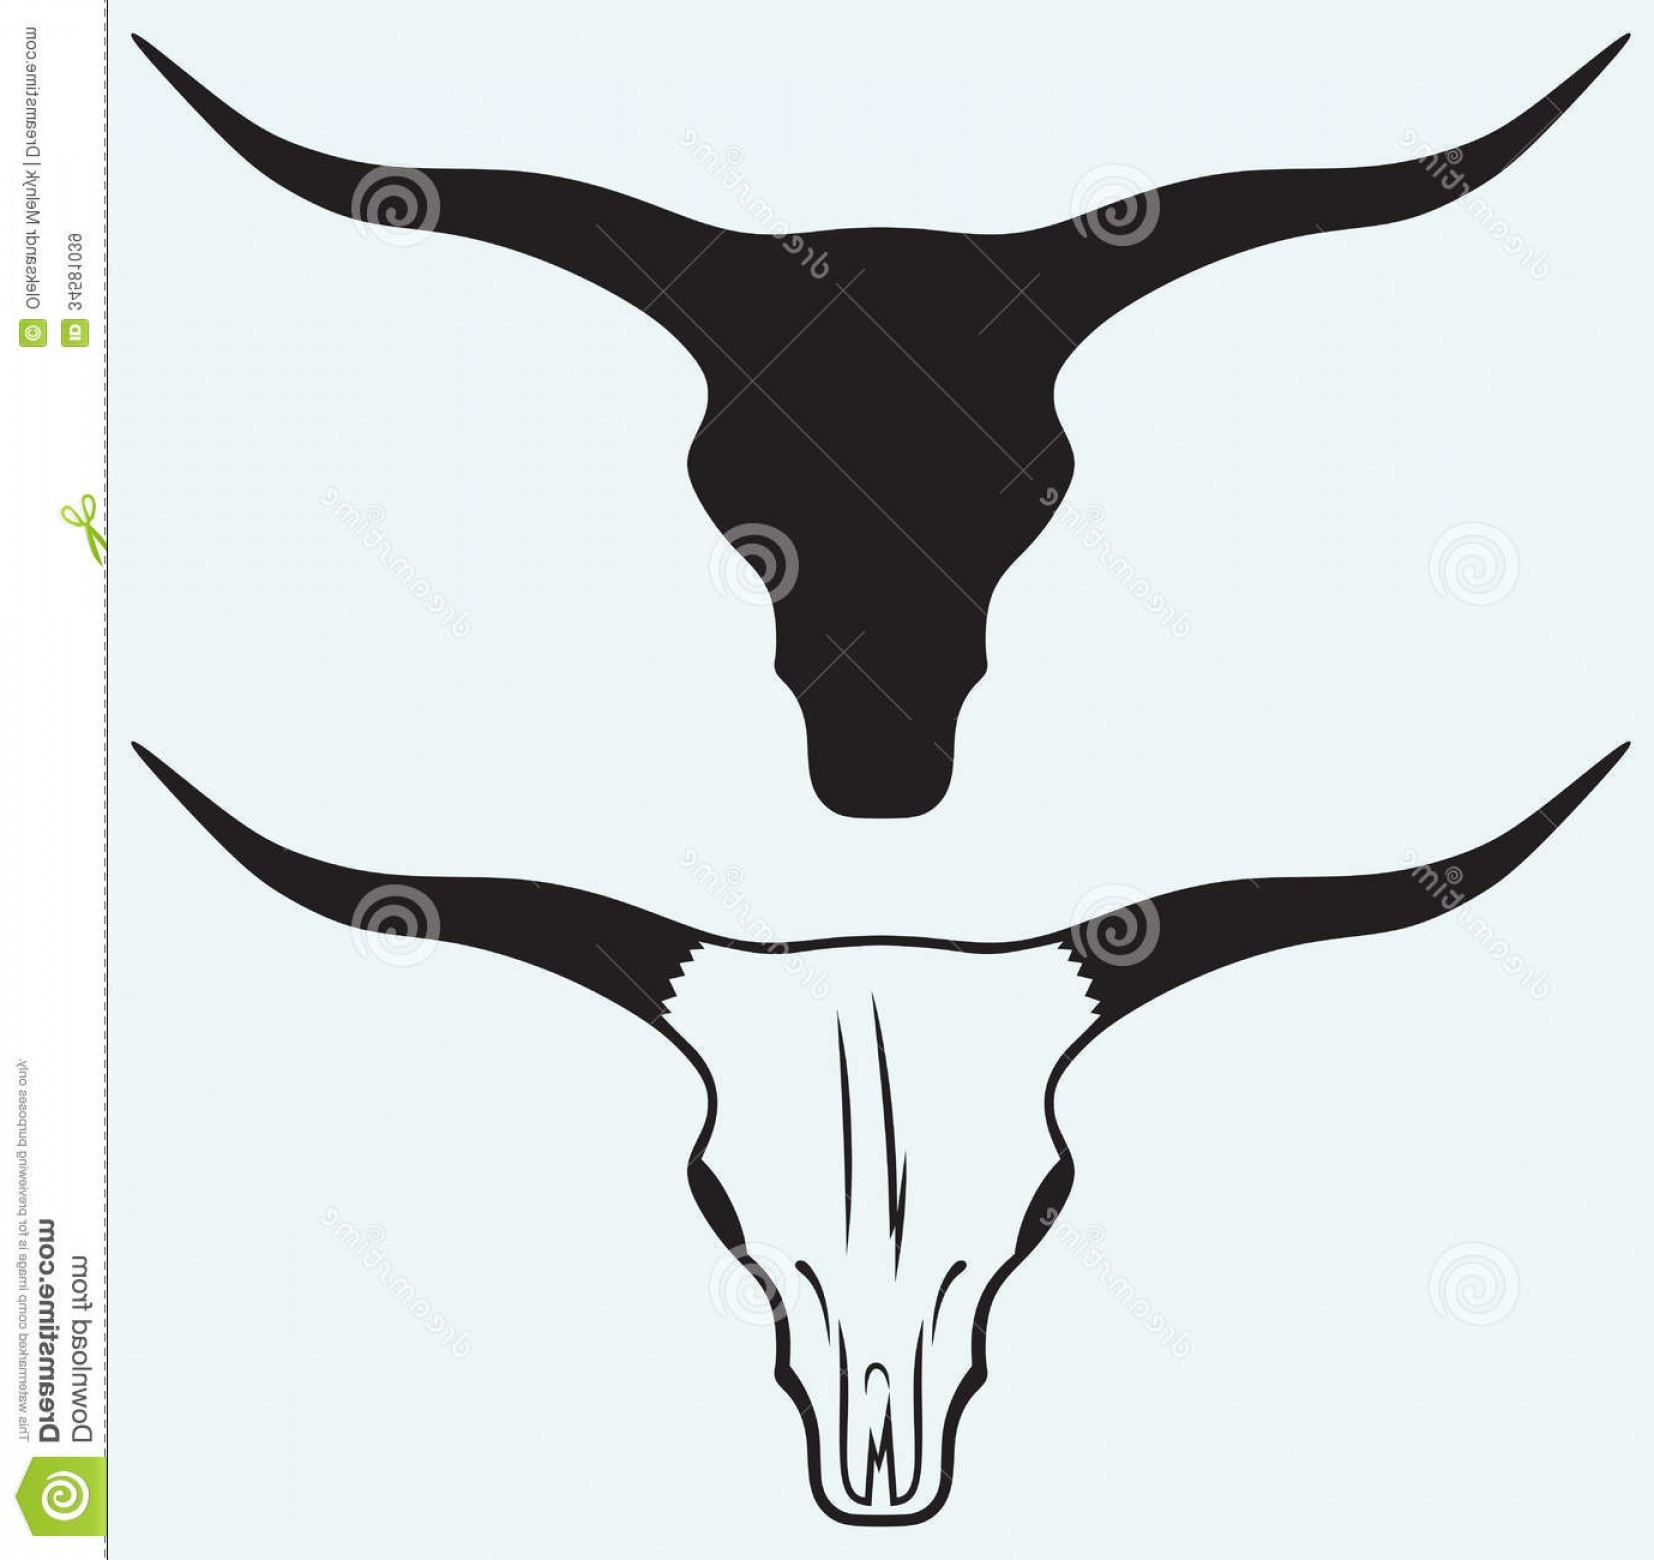 Cow Skull Vector Clip Art: Royalty Free Stock Images Skull Bull Isolated Blue Background Image